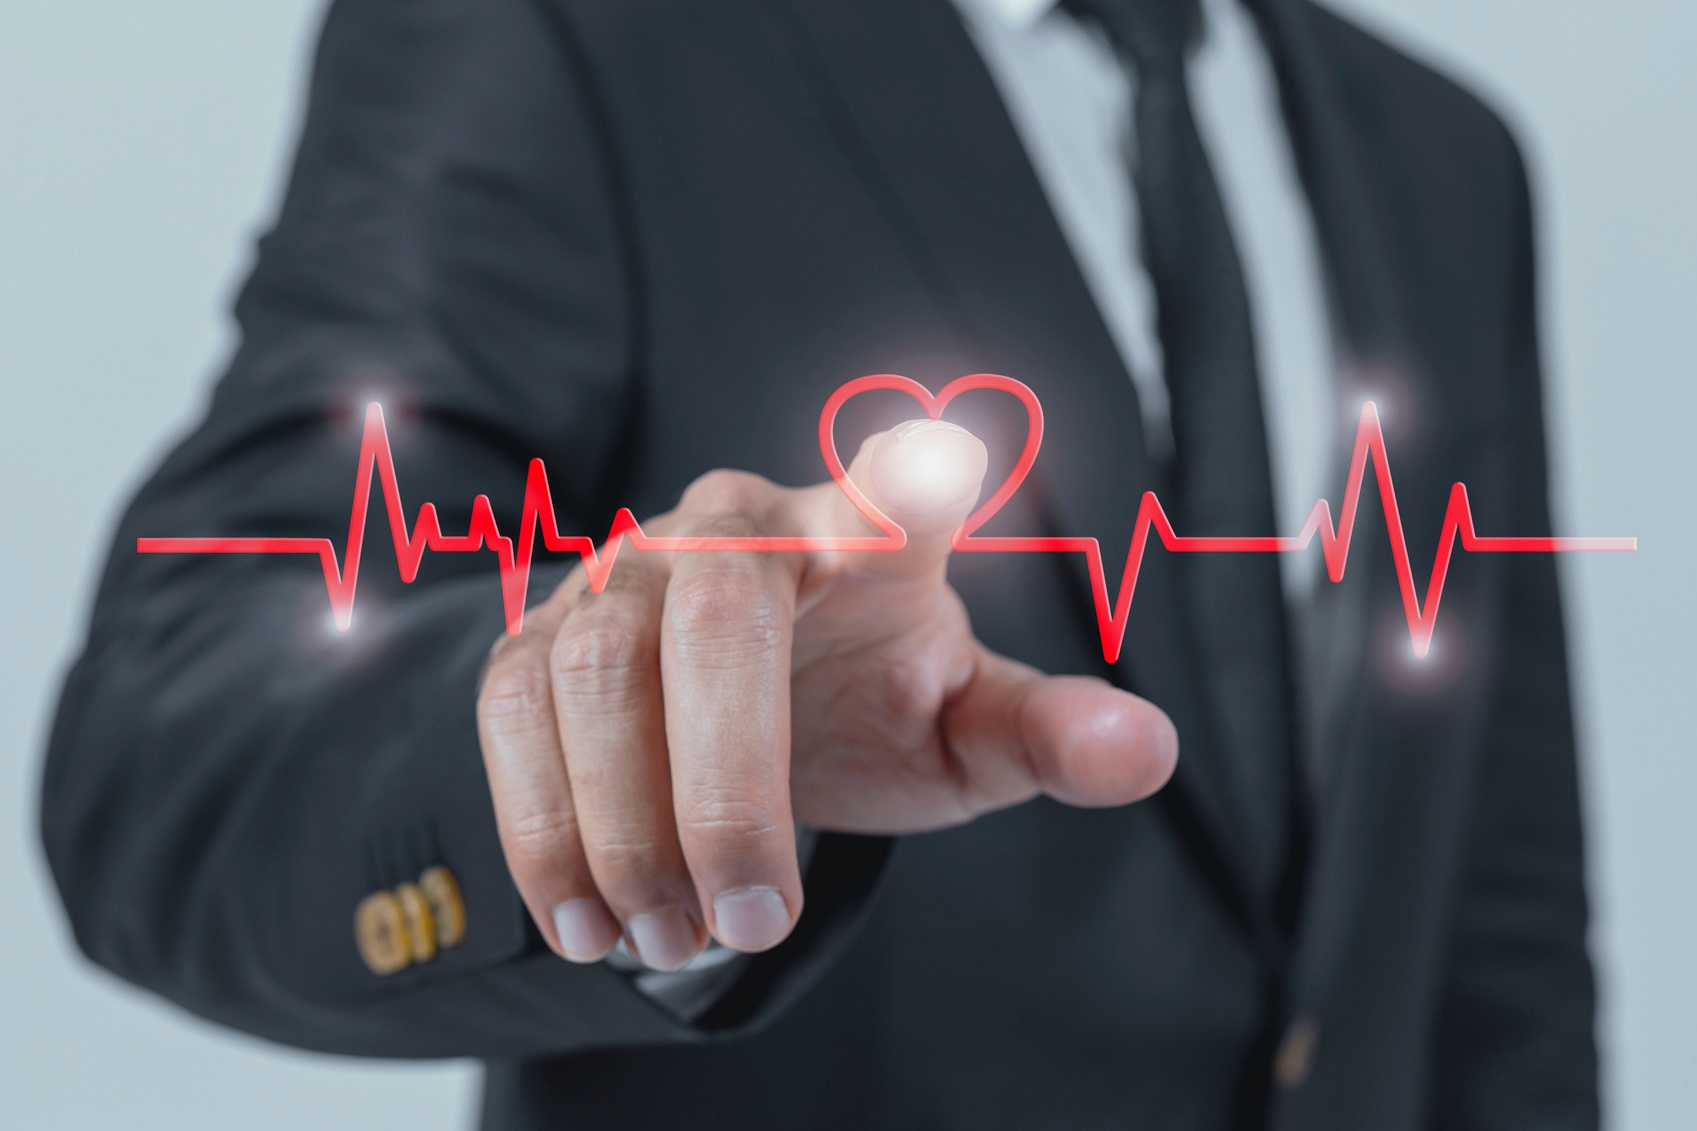 In the Age of Consumer-Controlled Healthcare, Digital DTP Marketing Shines